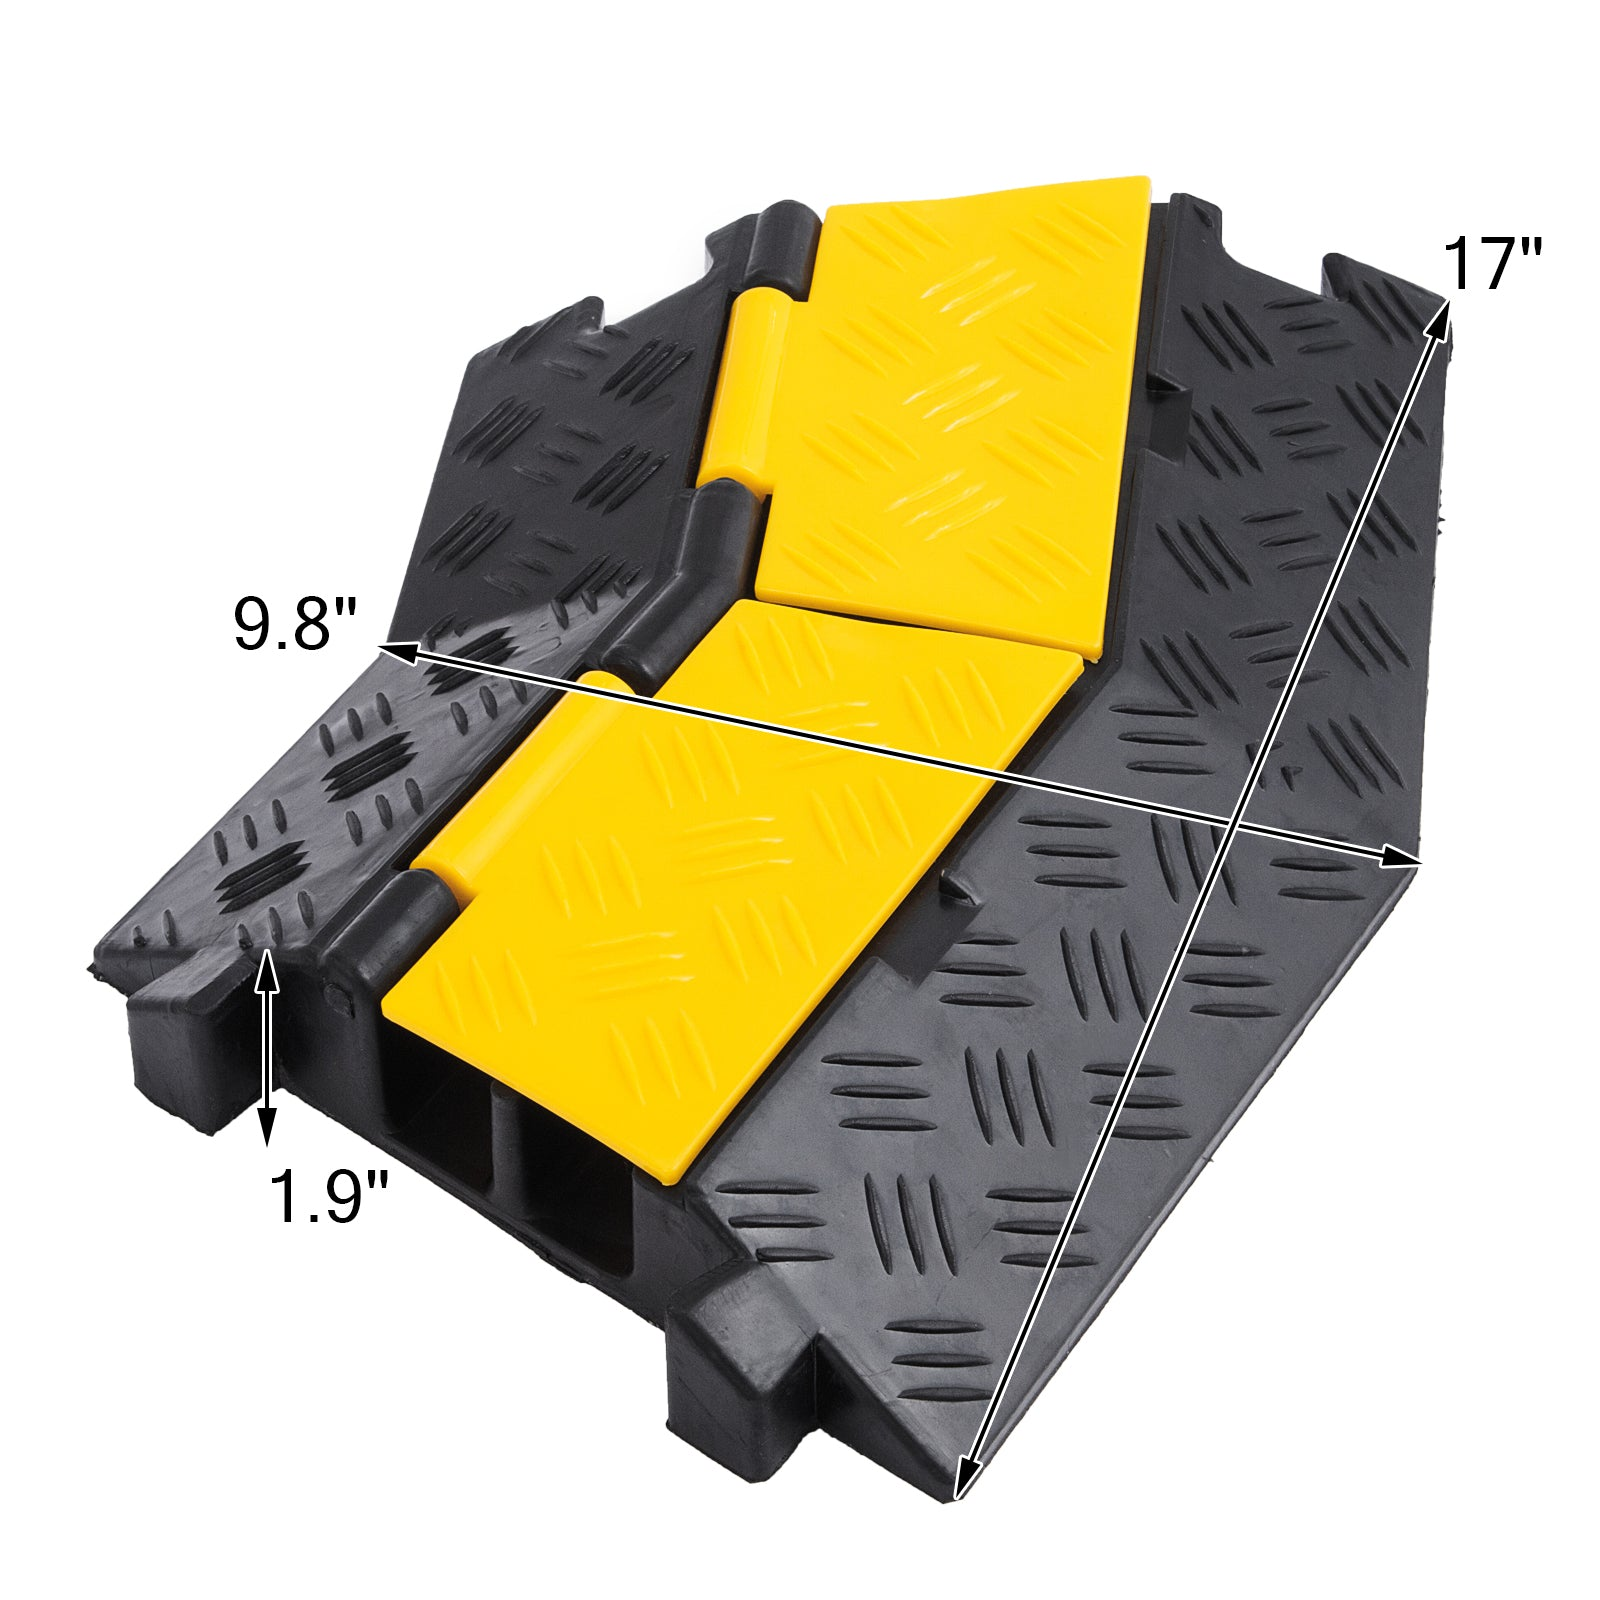 4 Pack Rubber Cable Protector Ramp 45 Right Turn Non-slip Pedestrian Vehicle